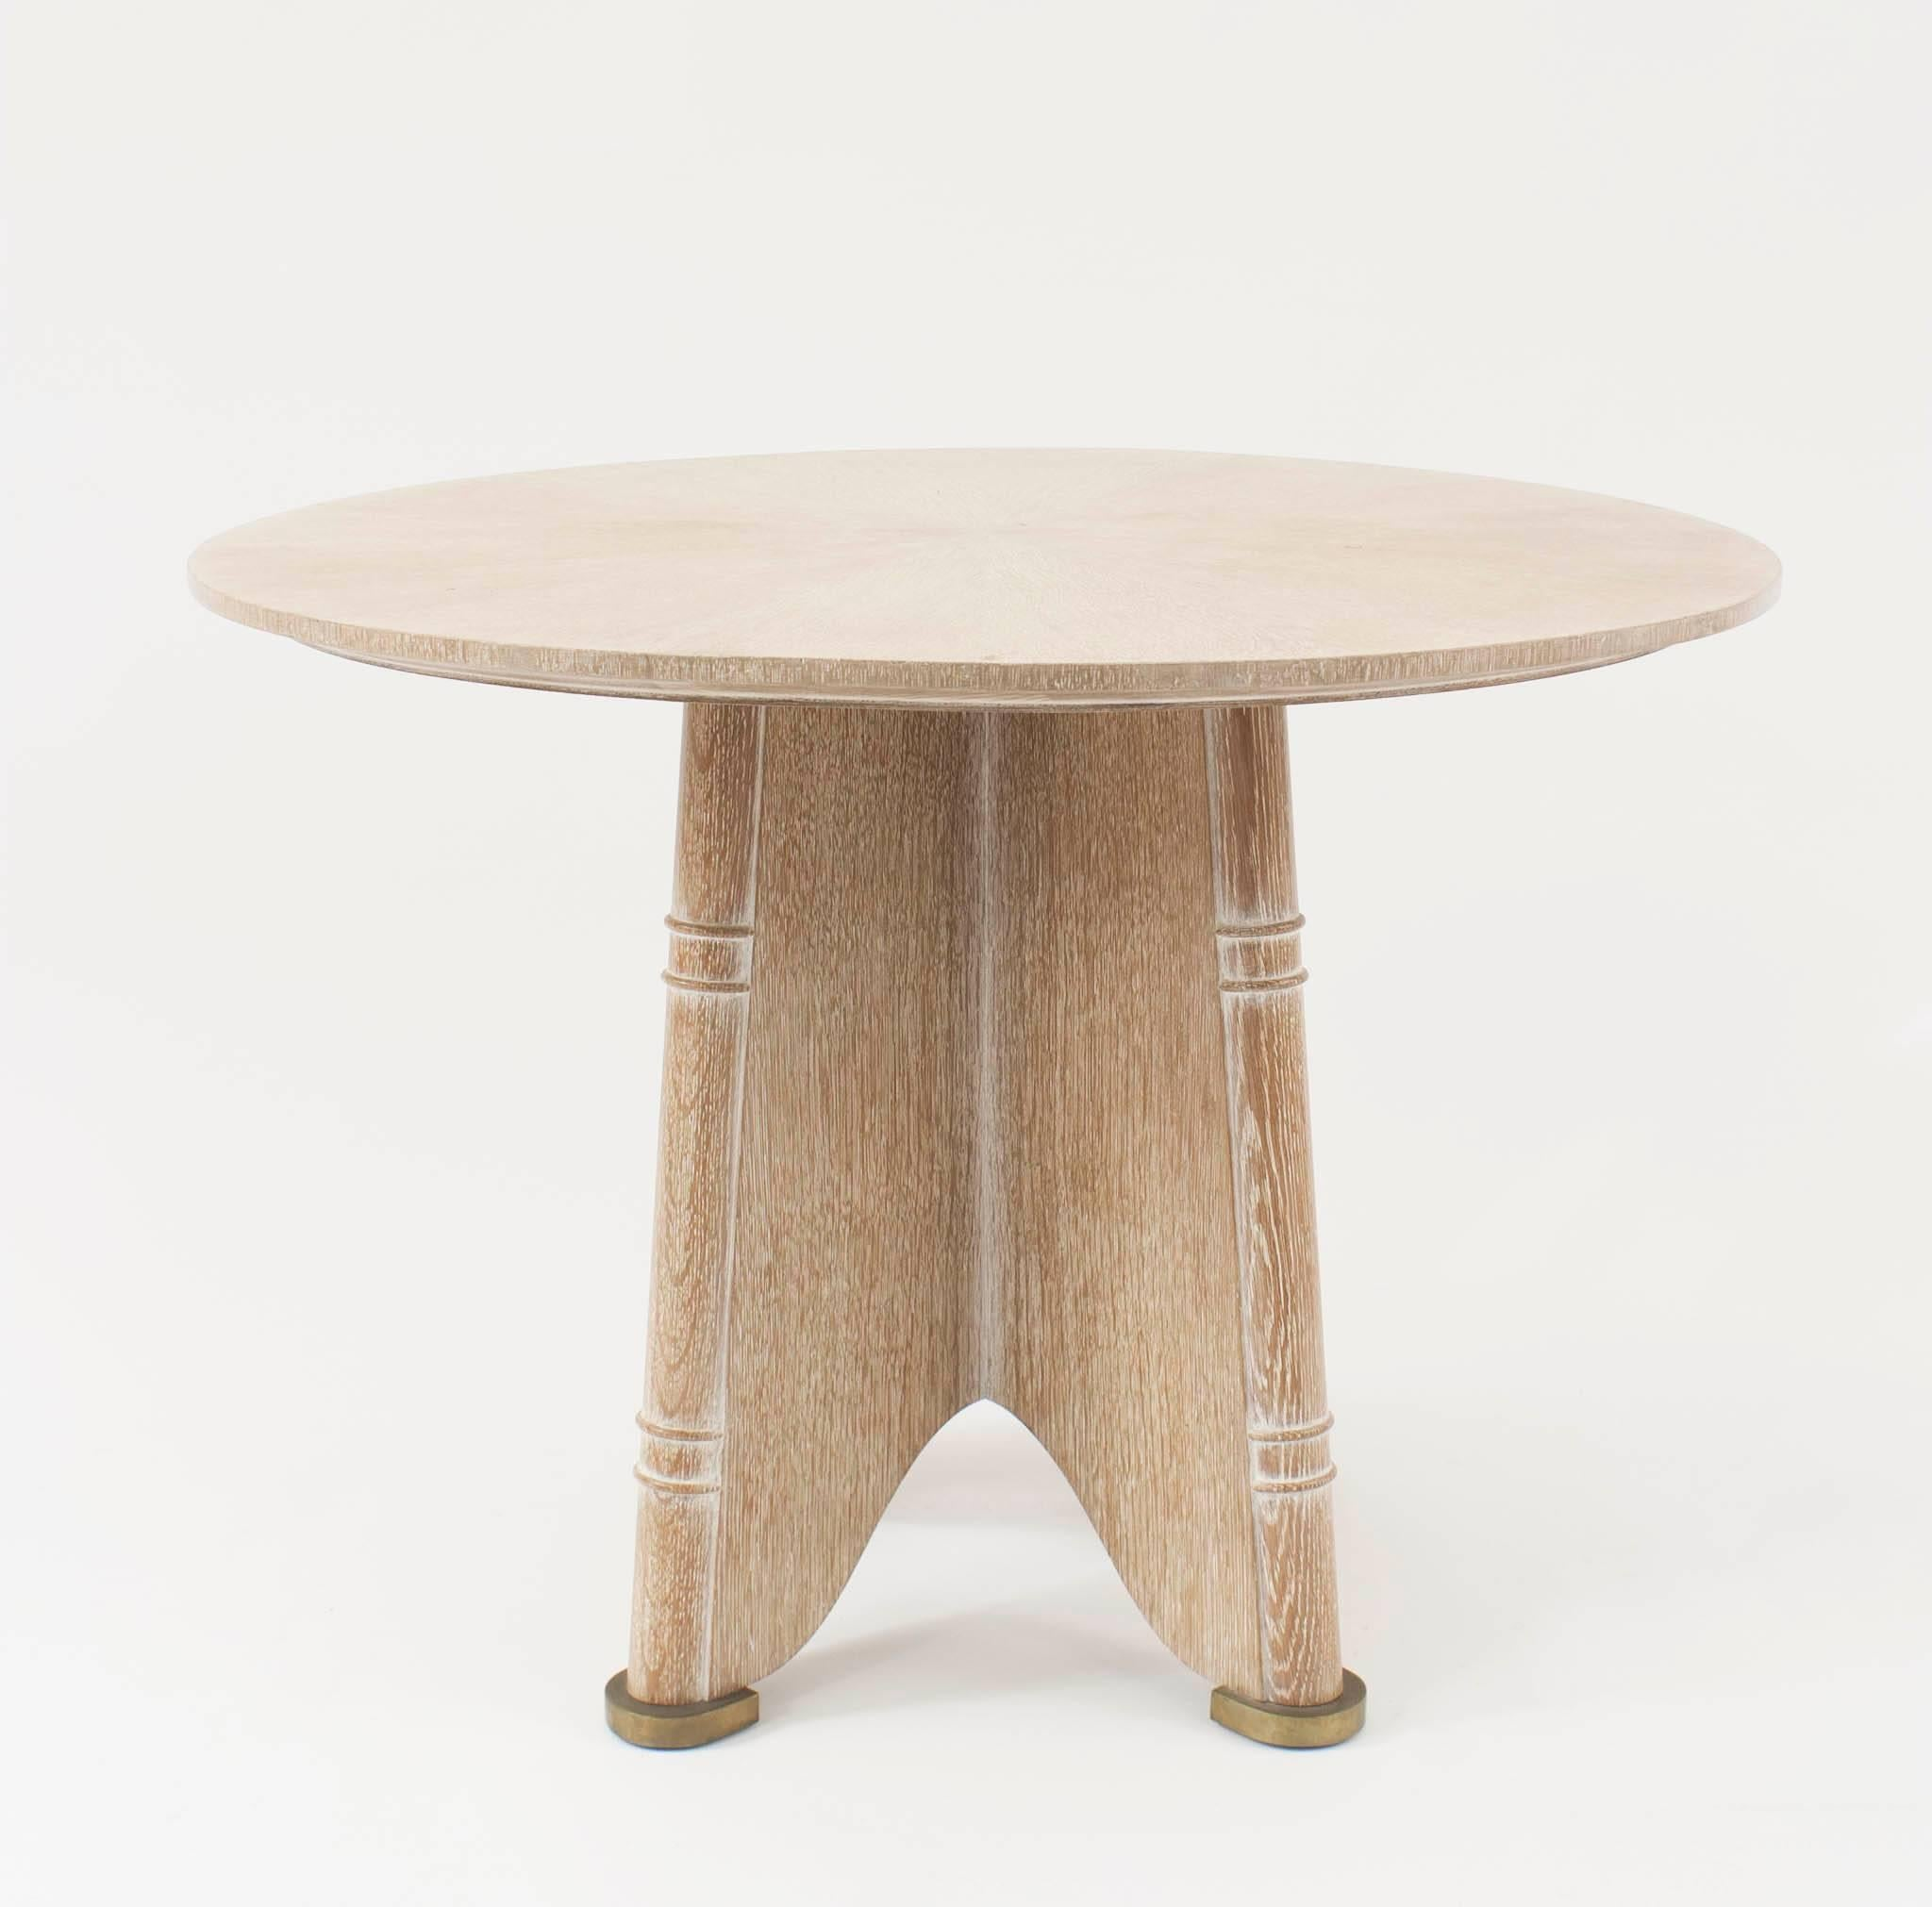 French Midcentury 1930s Bleached Ceruse Oak End Or Side Table With A Round  Sunburst Design Top